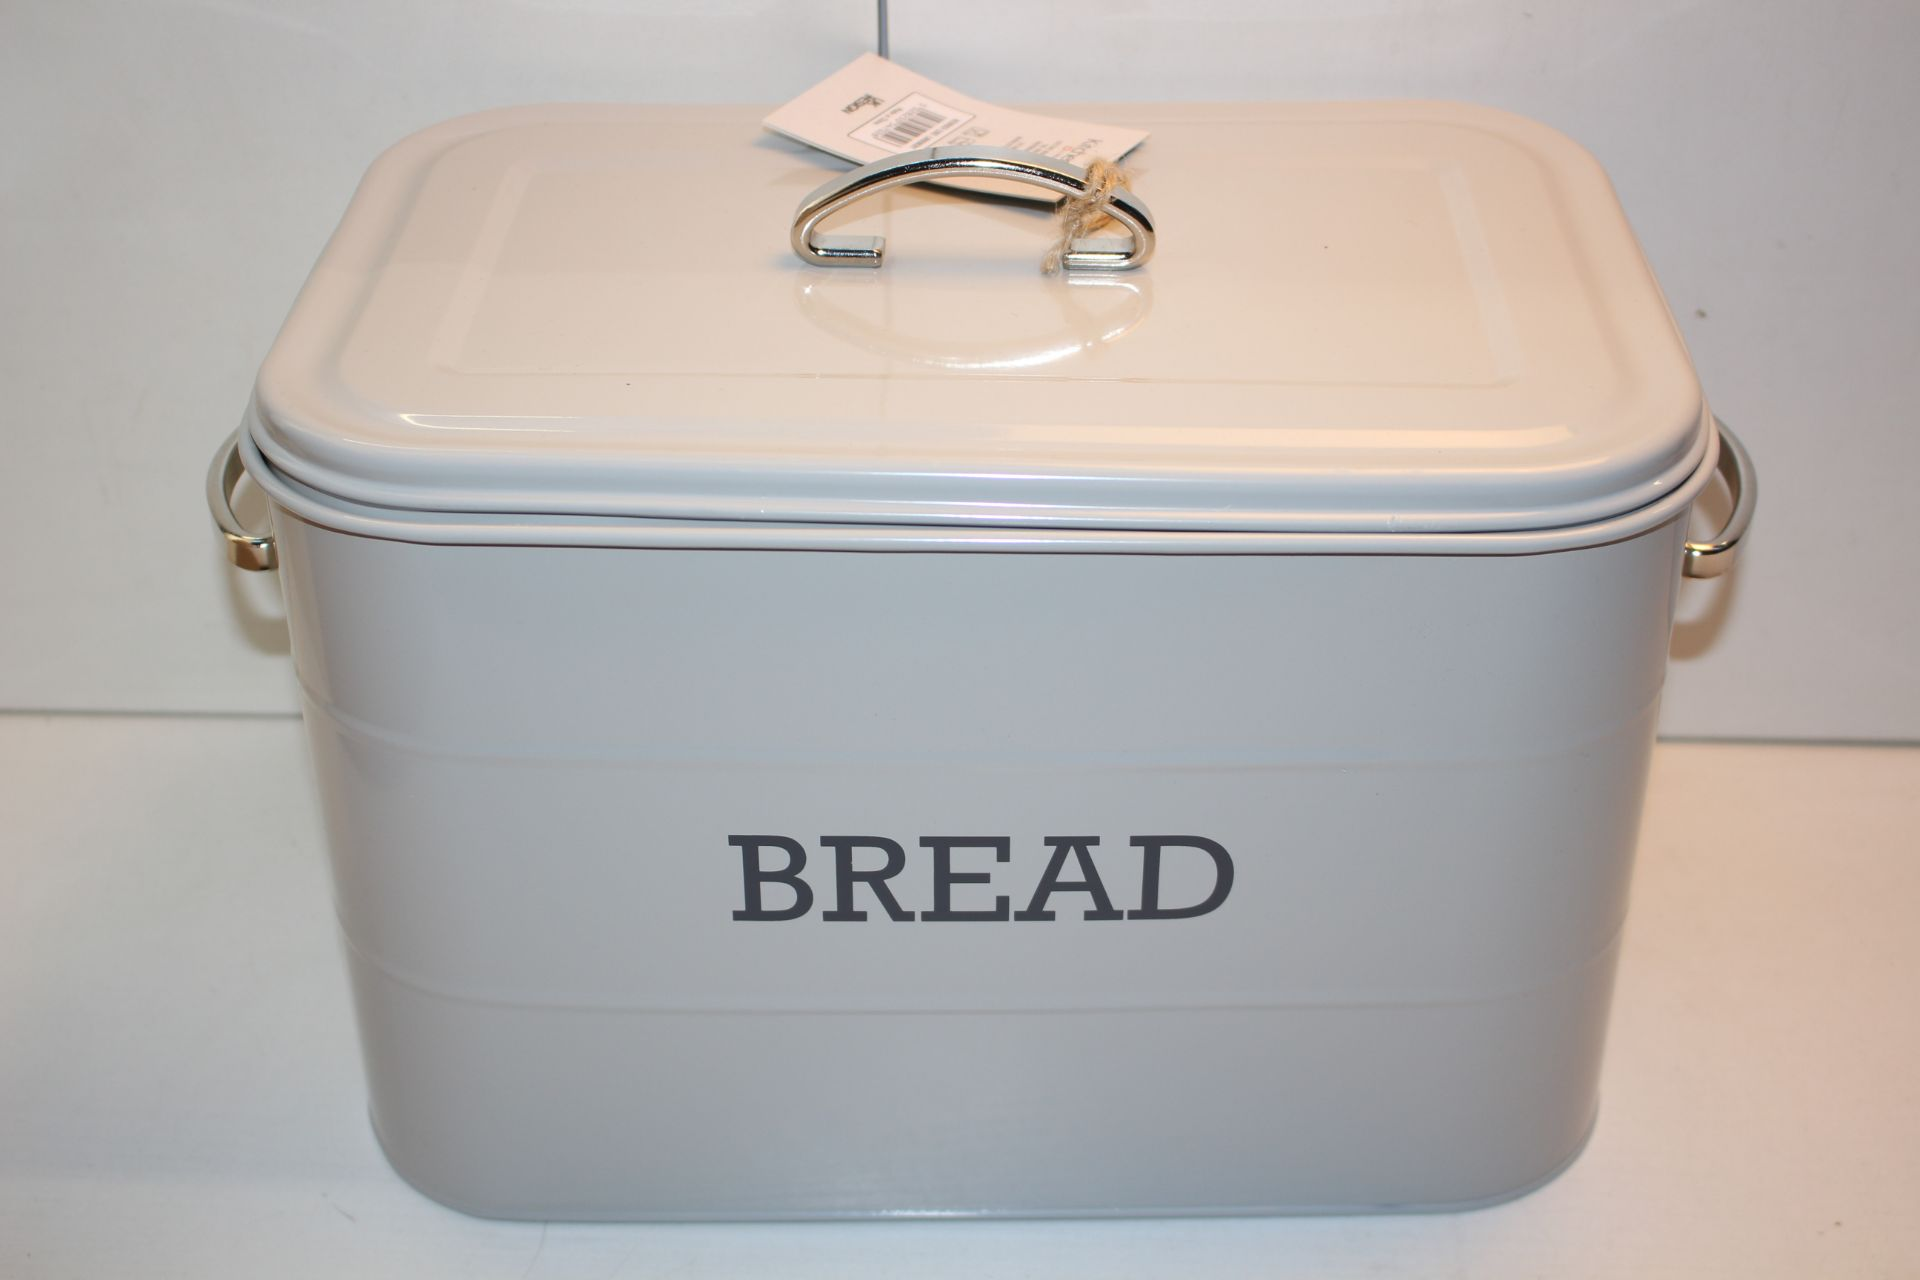 BOXED KITCHEN CRAFT BREAD BINCondition ReportAppraisal Available on Request- All Items are